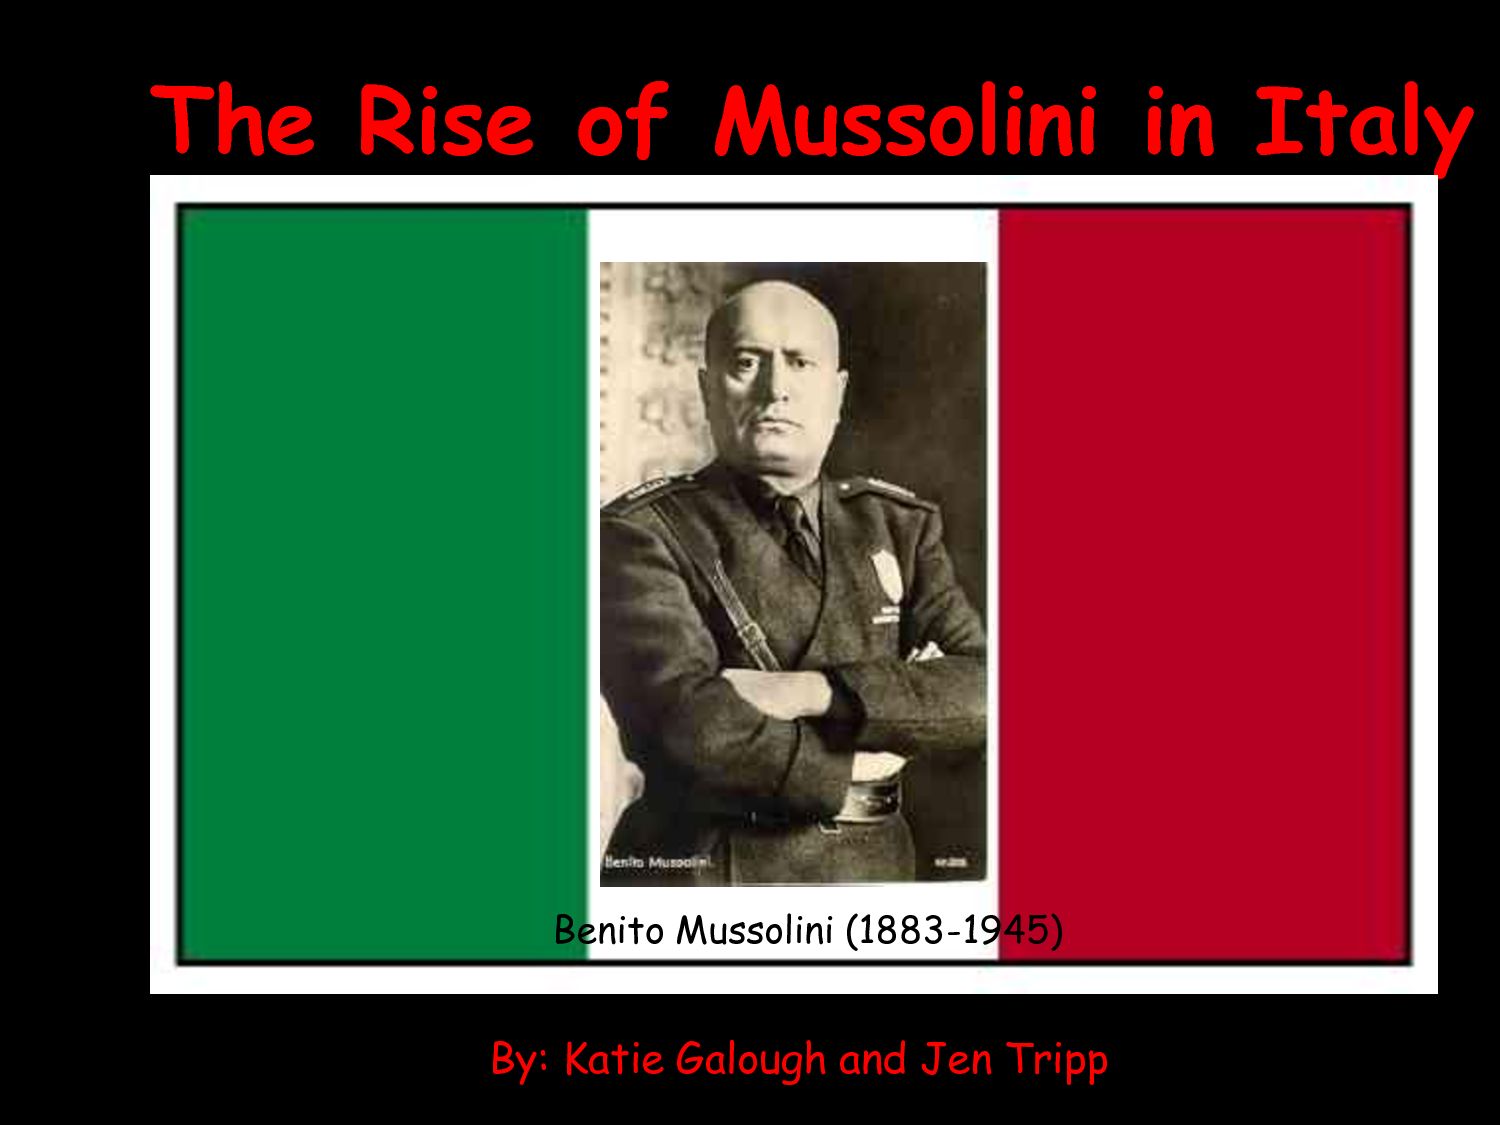 a history of the rule of benito mussolini in fascist italy Quizlet provides hitler mussolini world history activities,  nickname of benito mussolini  were fascist paramilitary armed guards in italy during the per.